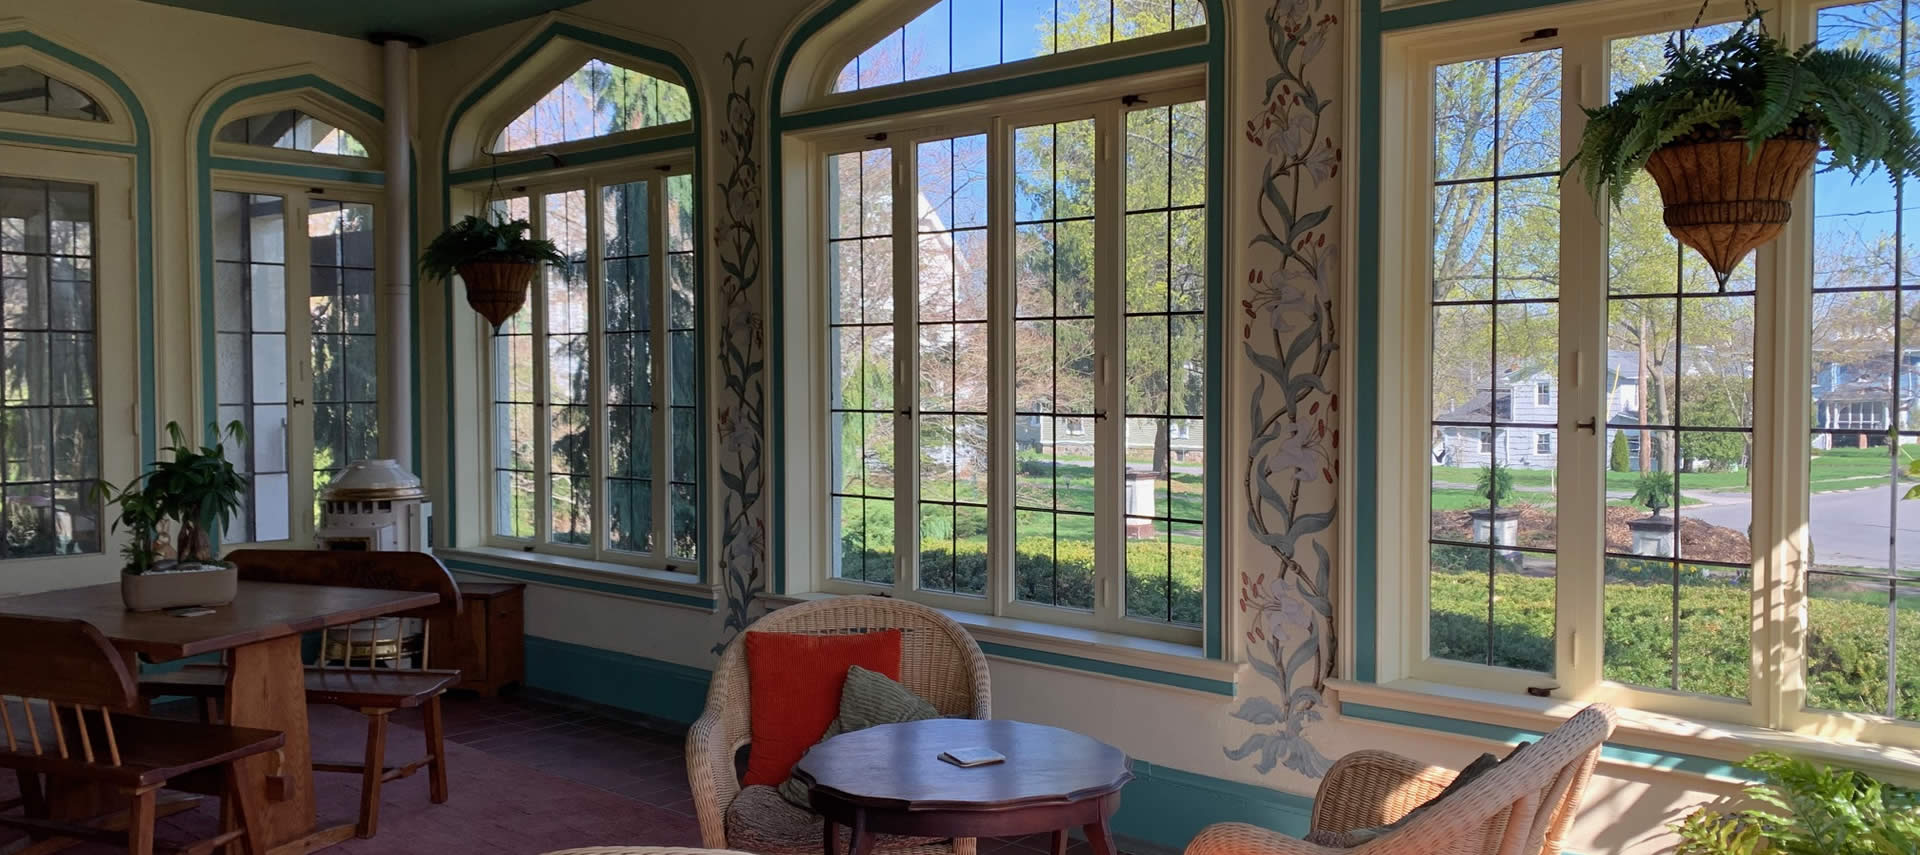 Custom painted sun room with many unique windows and tables and chairs.